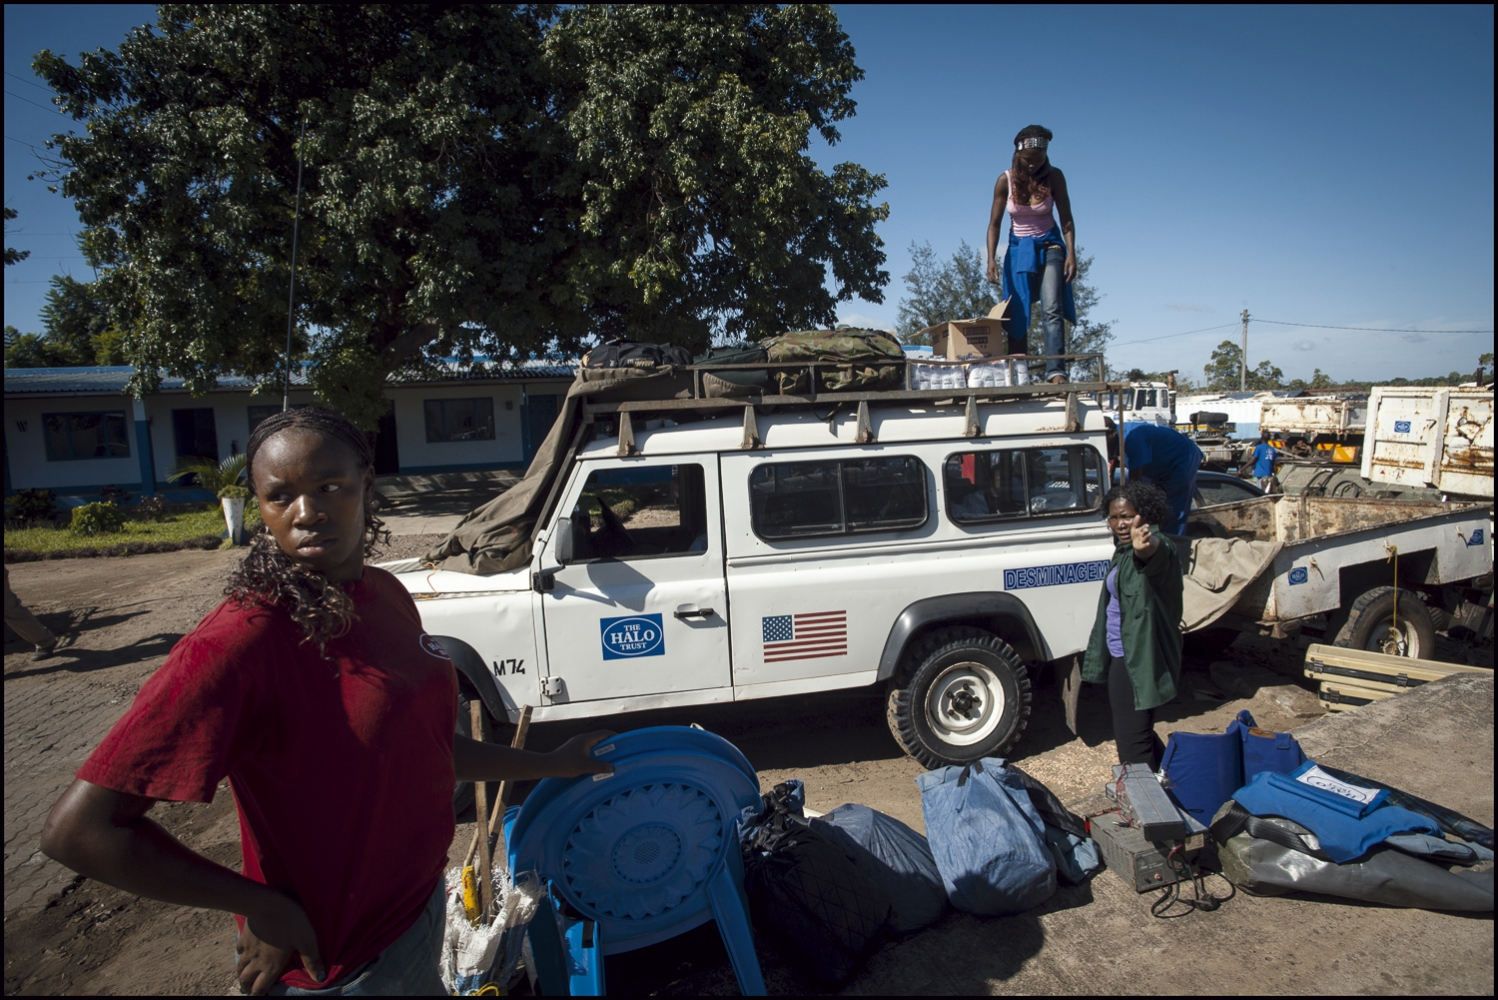 Deployment day at the HALO head quarters compound in Zimpeto, Maputo, Mozambique. L-R Women section De Miners Amelia Zulmira (21), Helena Wetela (28) and Luisa Chelene (29) load up their landrover before travelling to Damo camp.